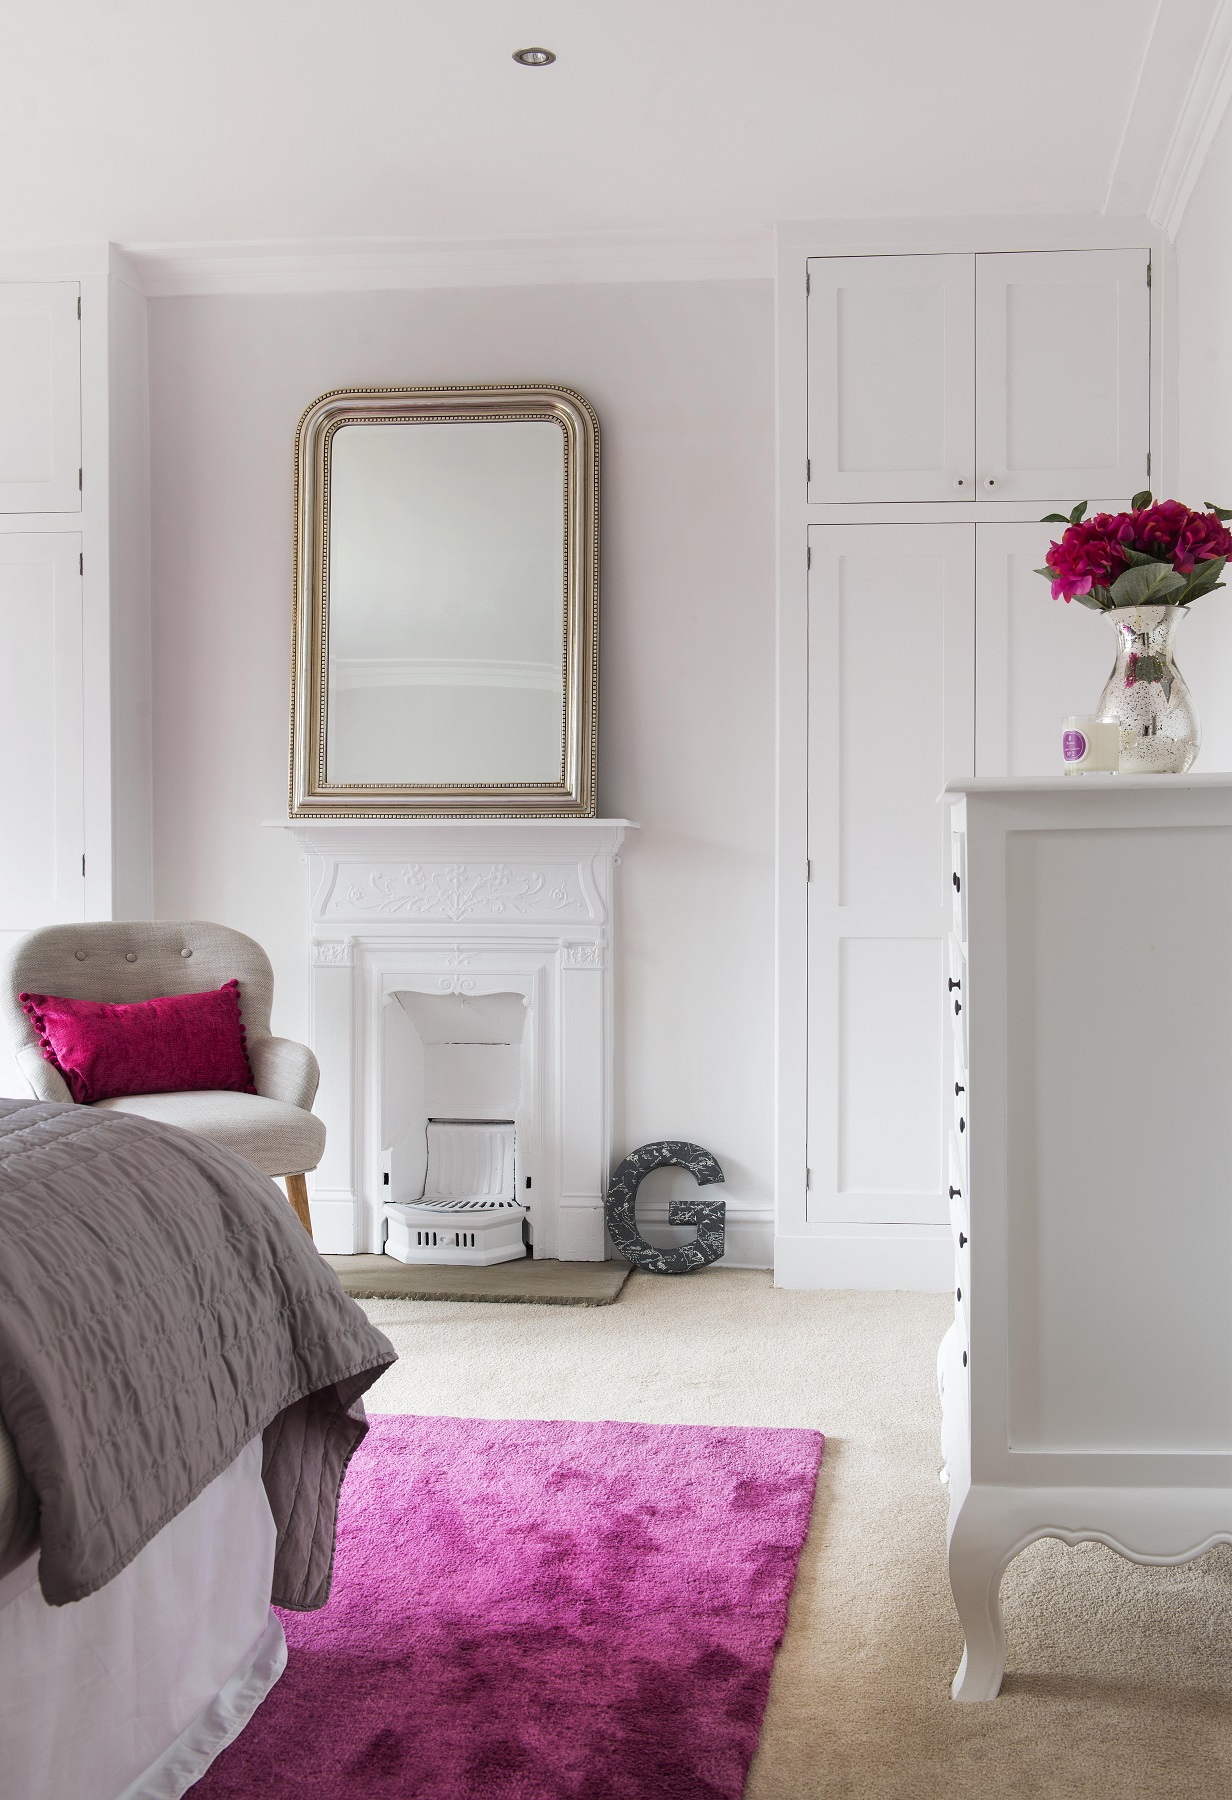 Light and airy bedroom with raspberry accents, Yorkshire